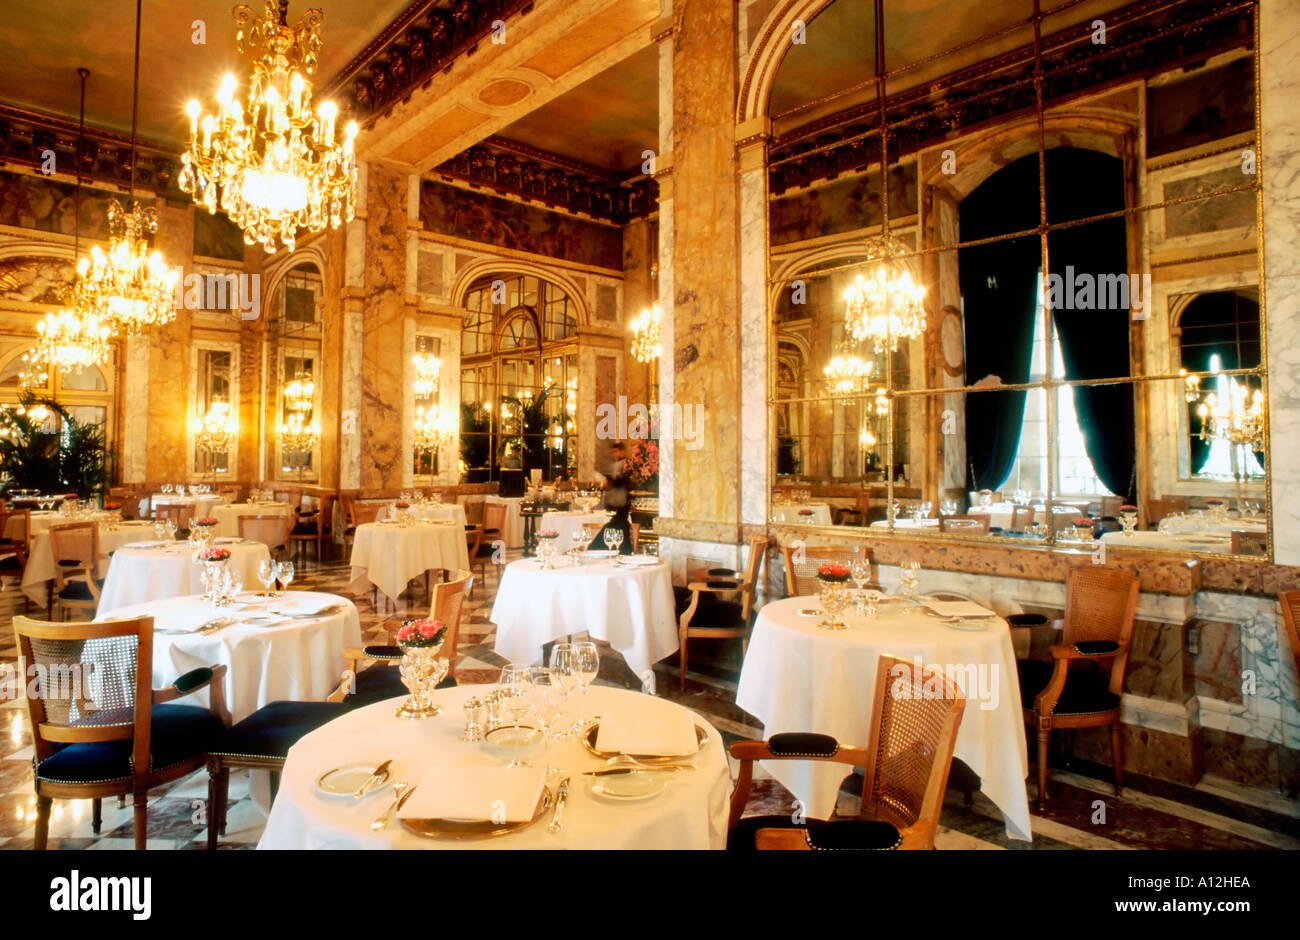 Cuisine Cuisine Paris France French Haute Cuisine Restaurant Dining Room